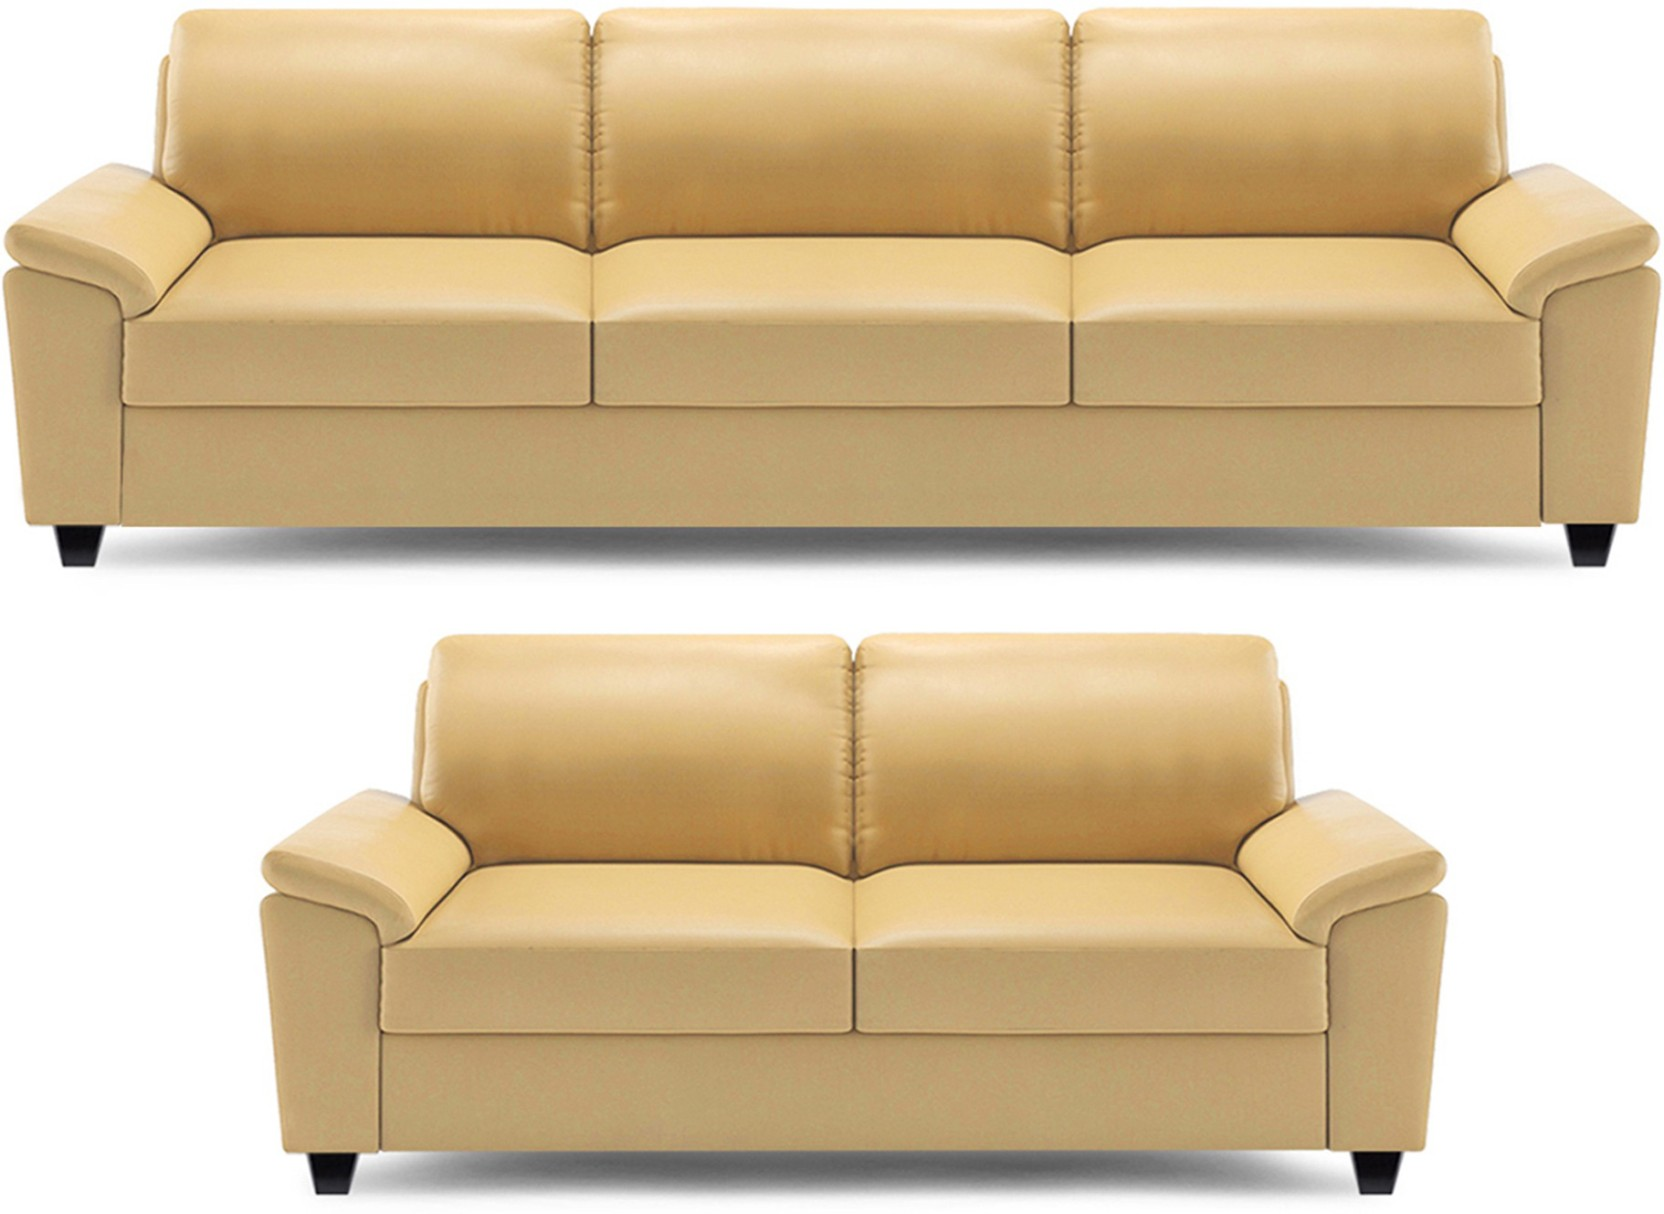 Dolphin Oxford Leatherette 3 2 Beige Sofa Set Price in India